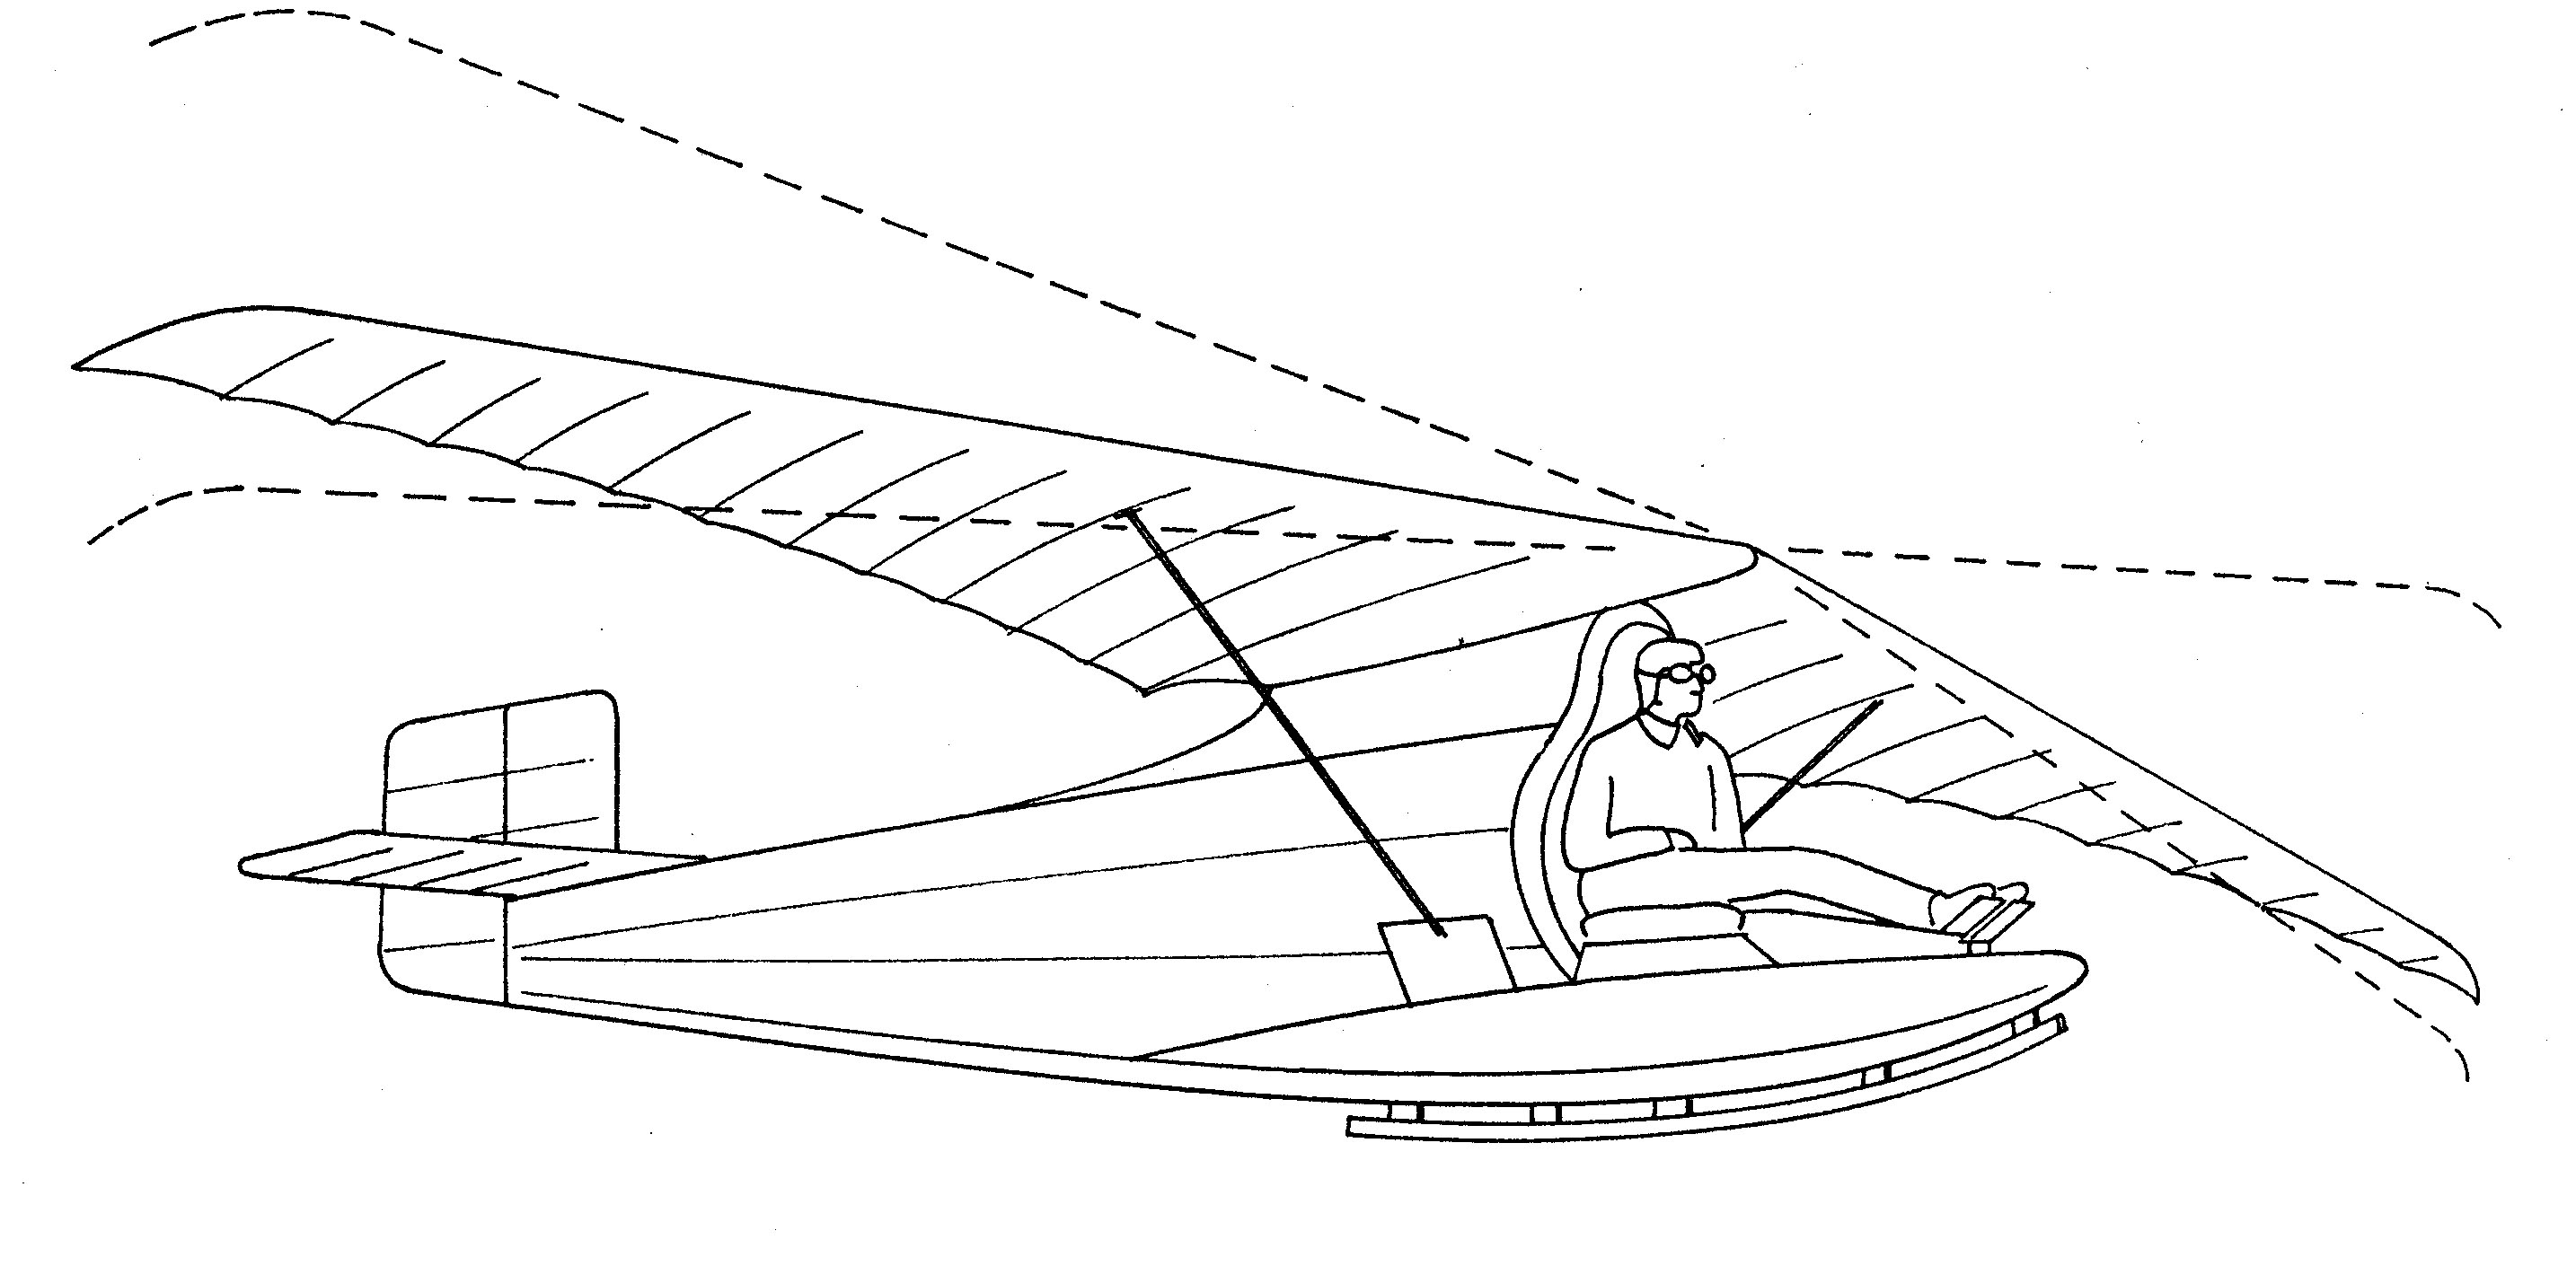 Ornithopter research papers